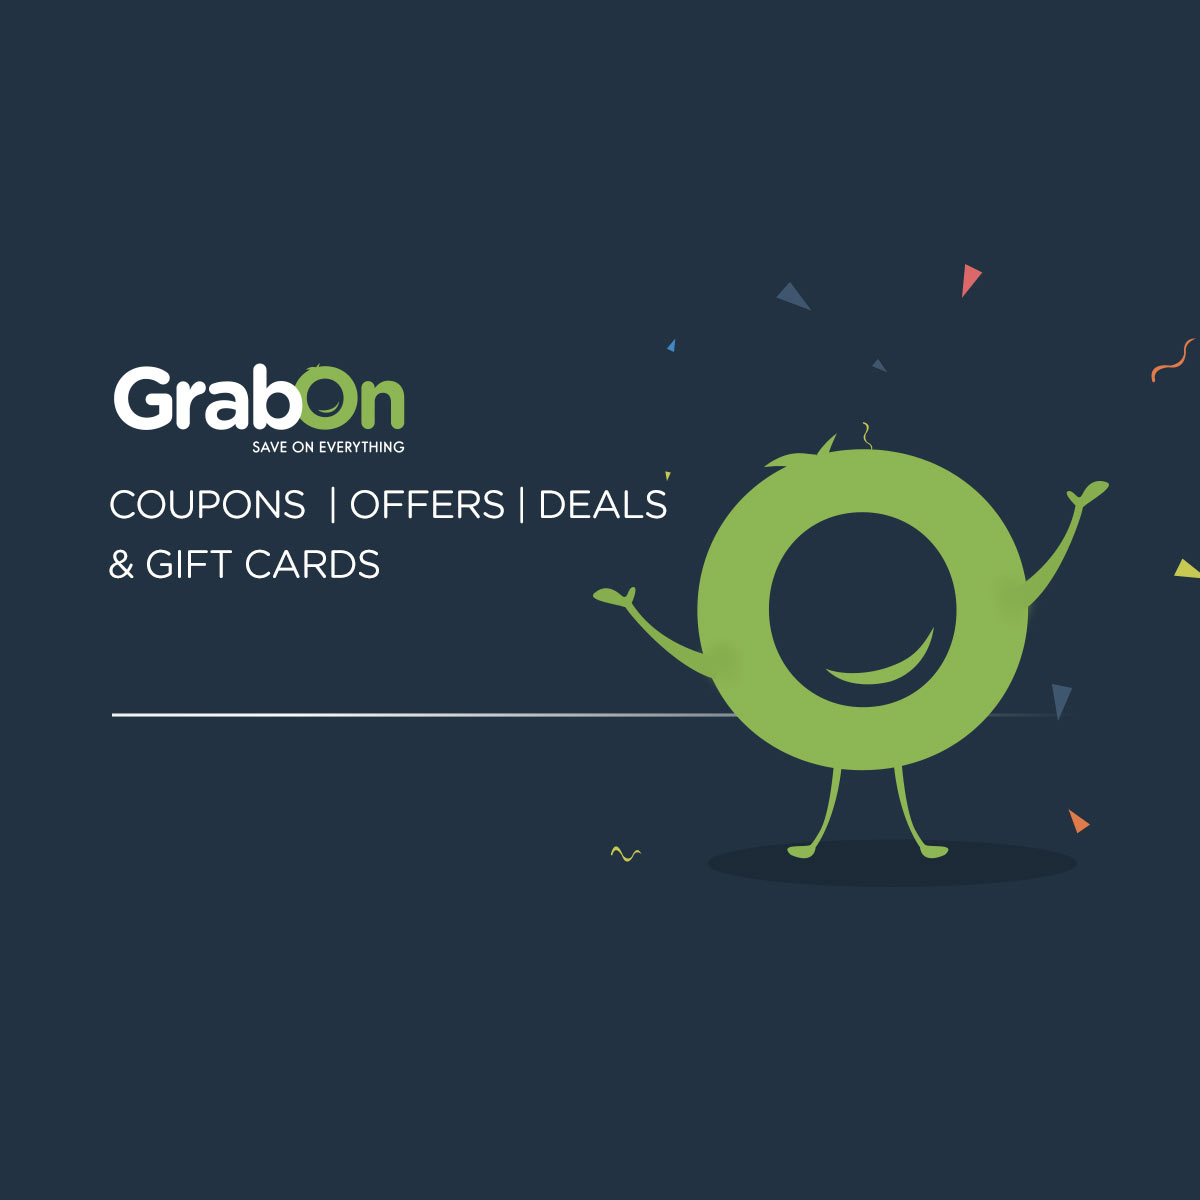 View GrabOn: Coupons, Offers, Promo Codes, Deals & Discount Gift Cards outages and uptime